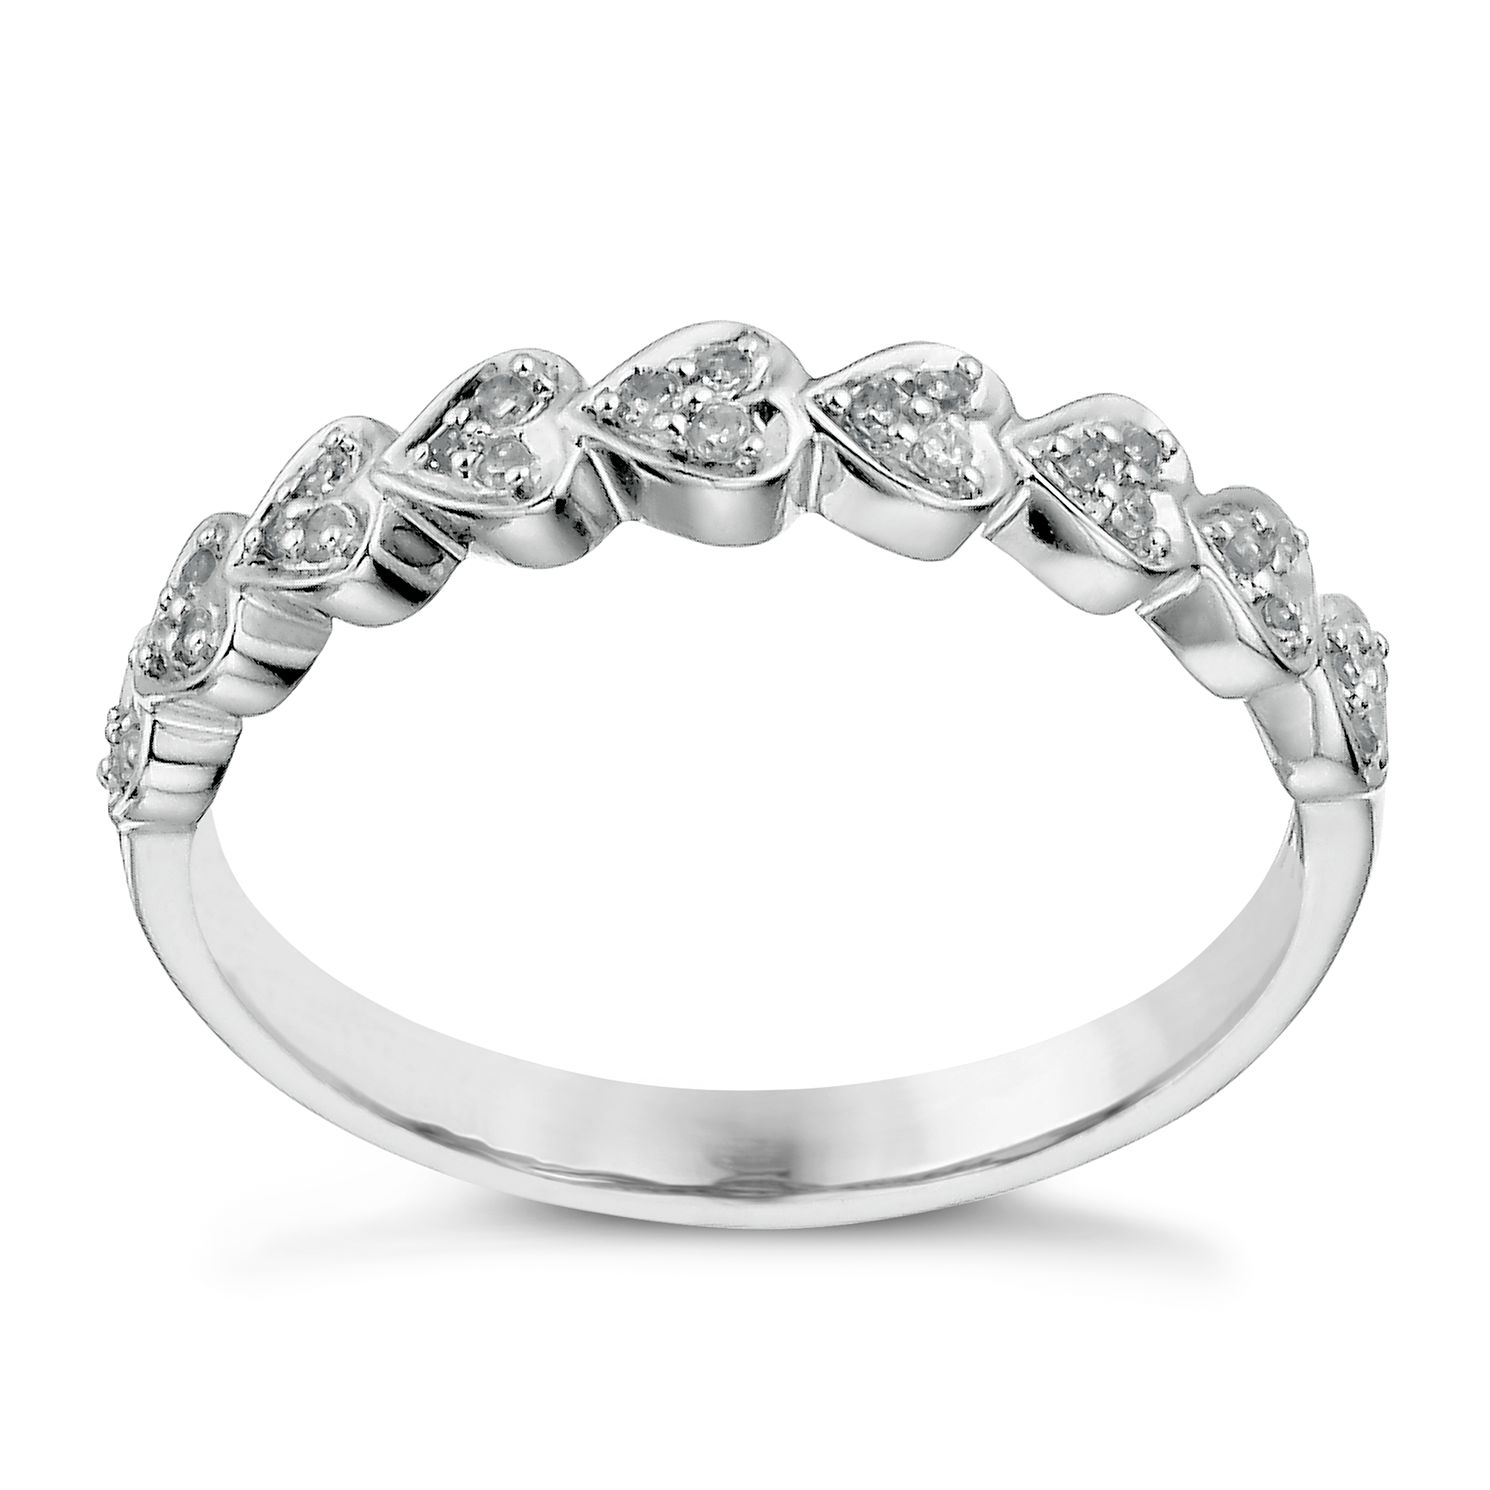 9ct White Gold 10 Point Diamond Heart Ring - Product number 1246216